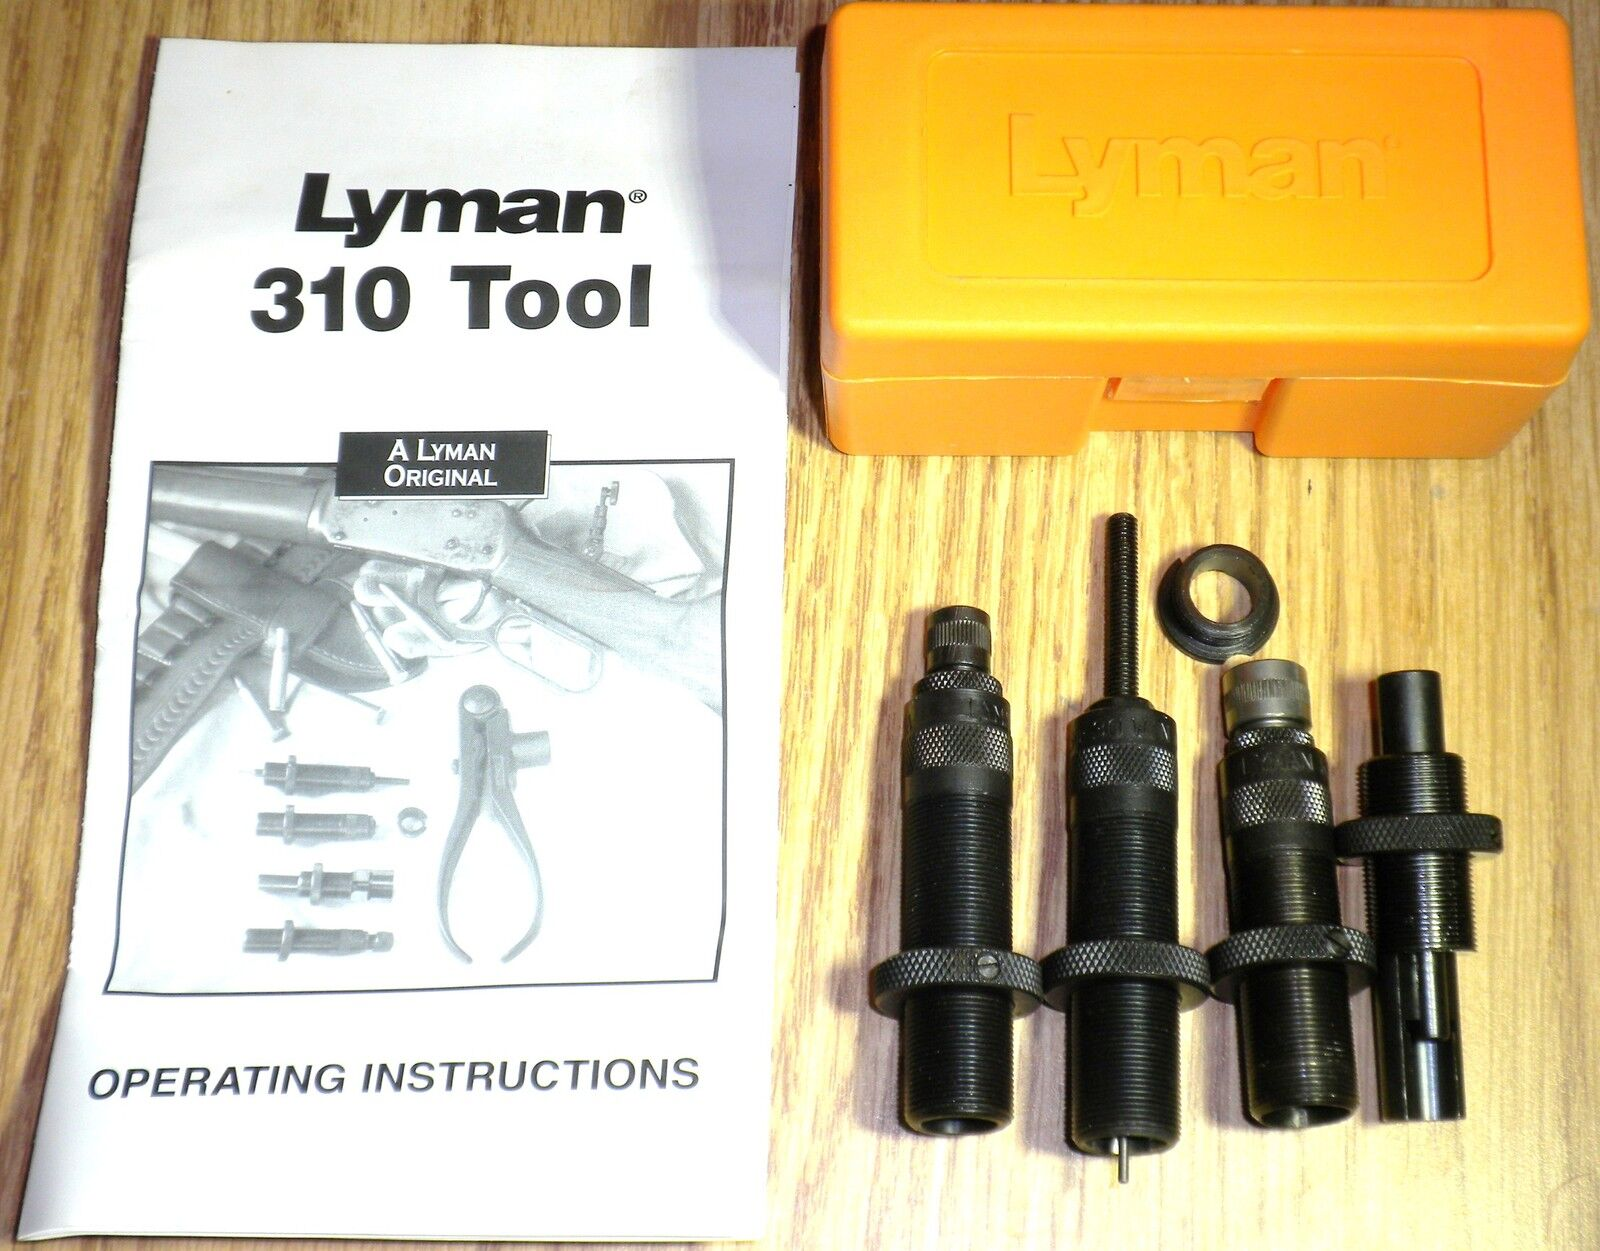 7020101 Lyman 310 Tool 4-Die Set 30-30 Win. RequiROT) (Large Handles RequiROT) Win. FREE SHIP 8ded84